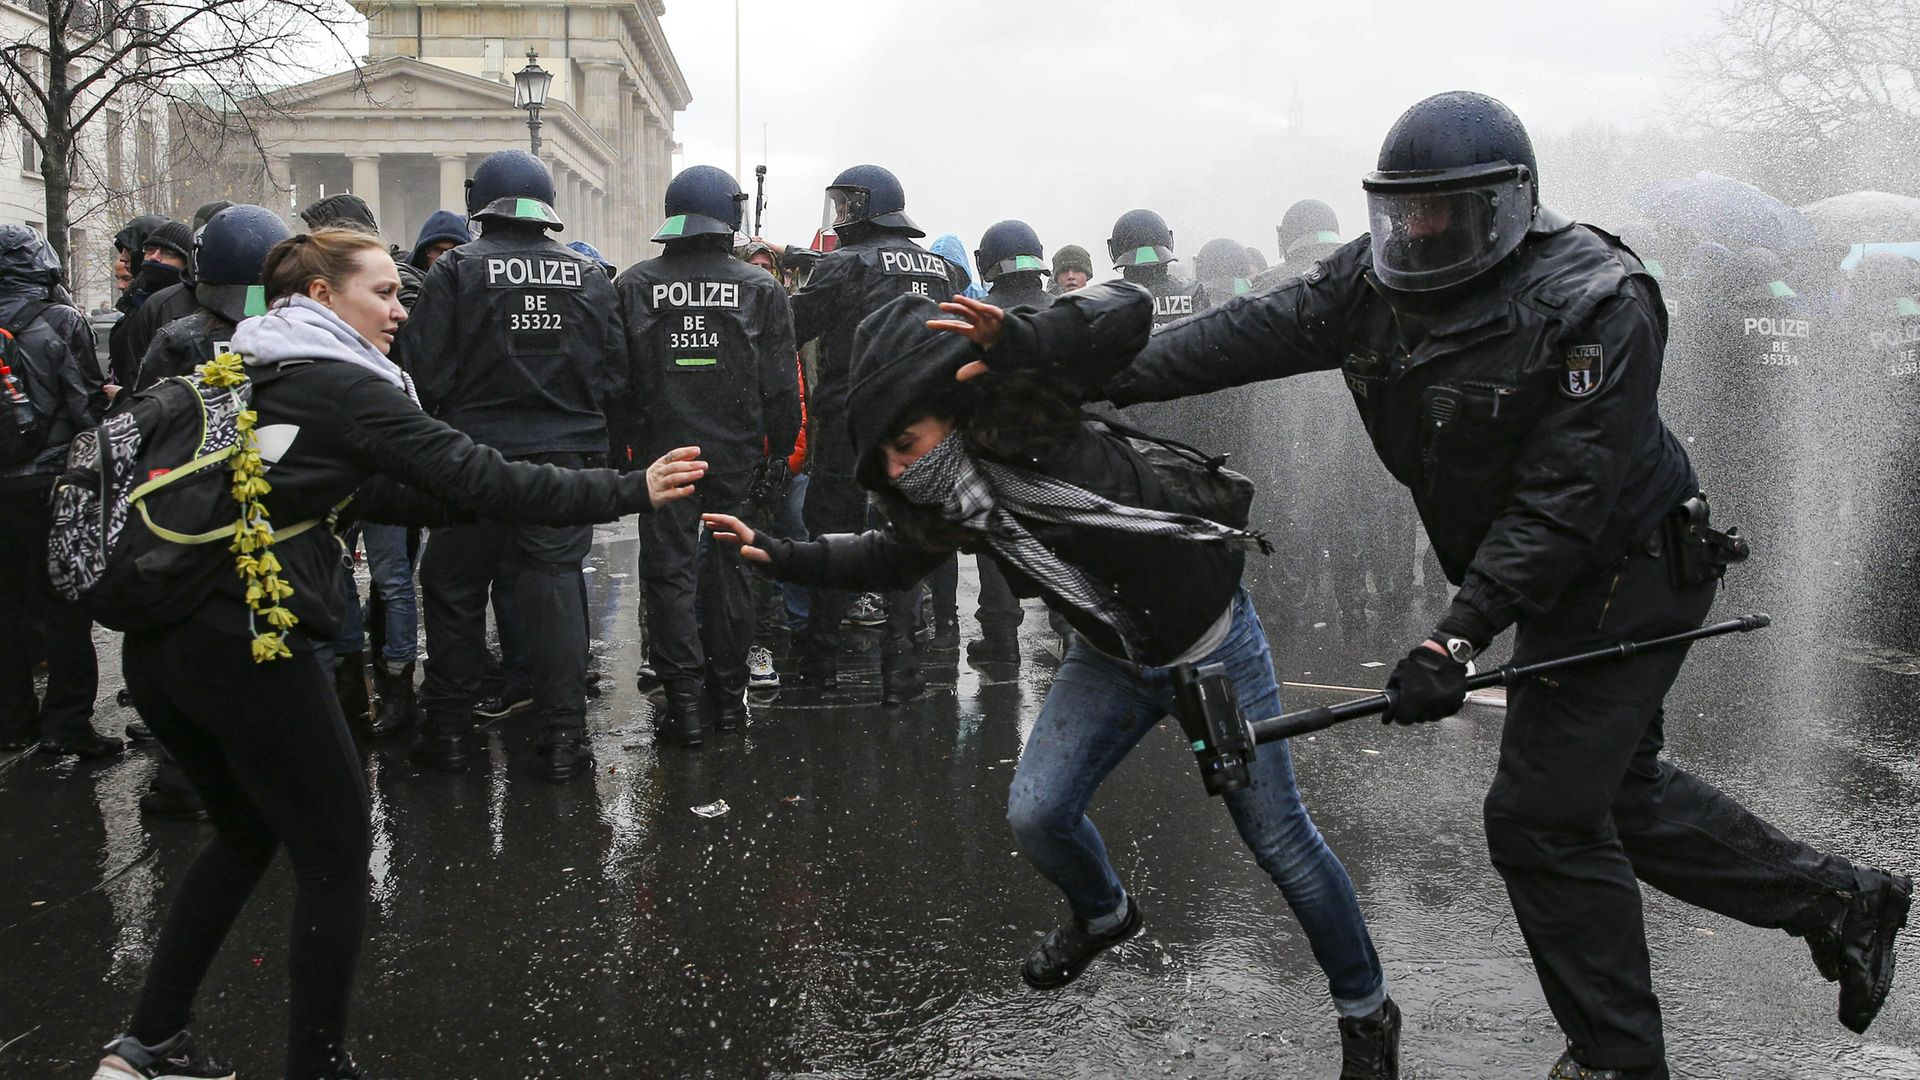 Police clash with a demonstrator near the German parliament, as water cannons are used to break up a protest against coronavirus restrictions - Credit: Anadolu Agency via Getty Images